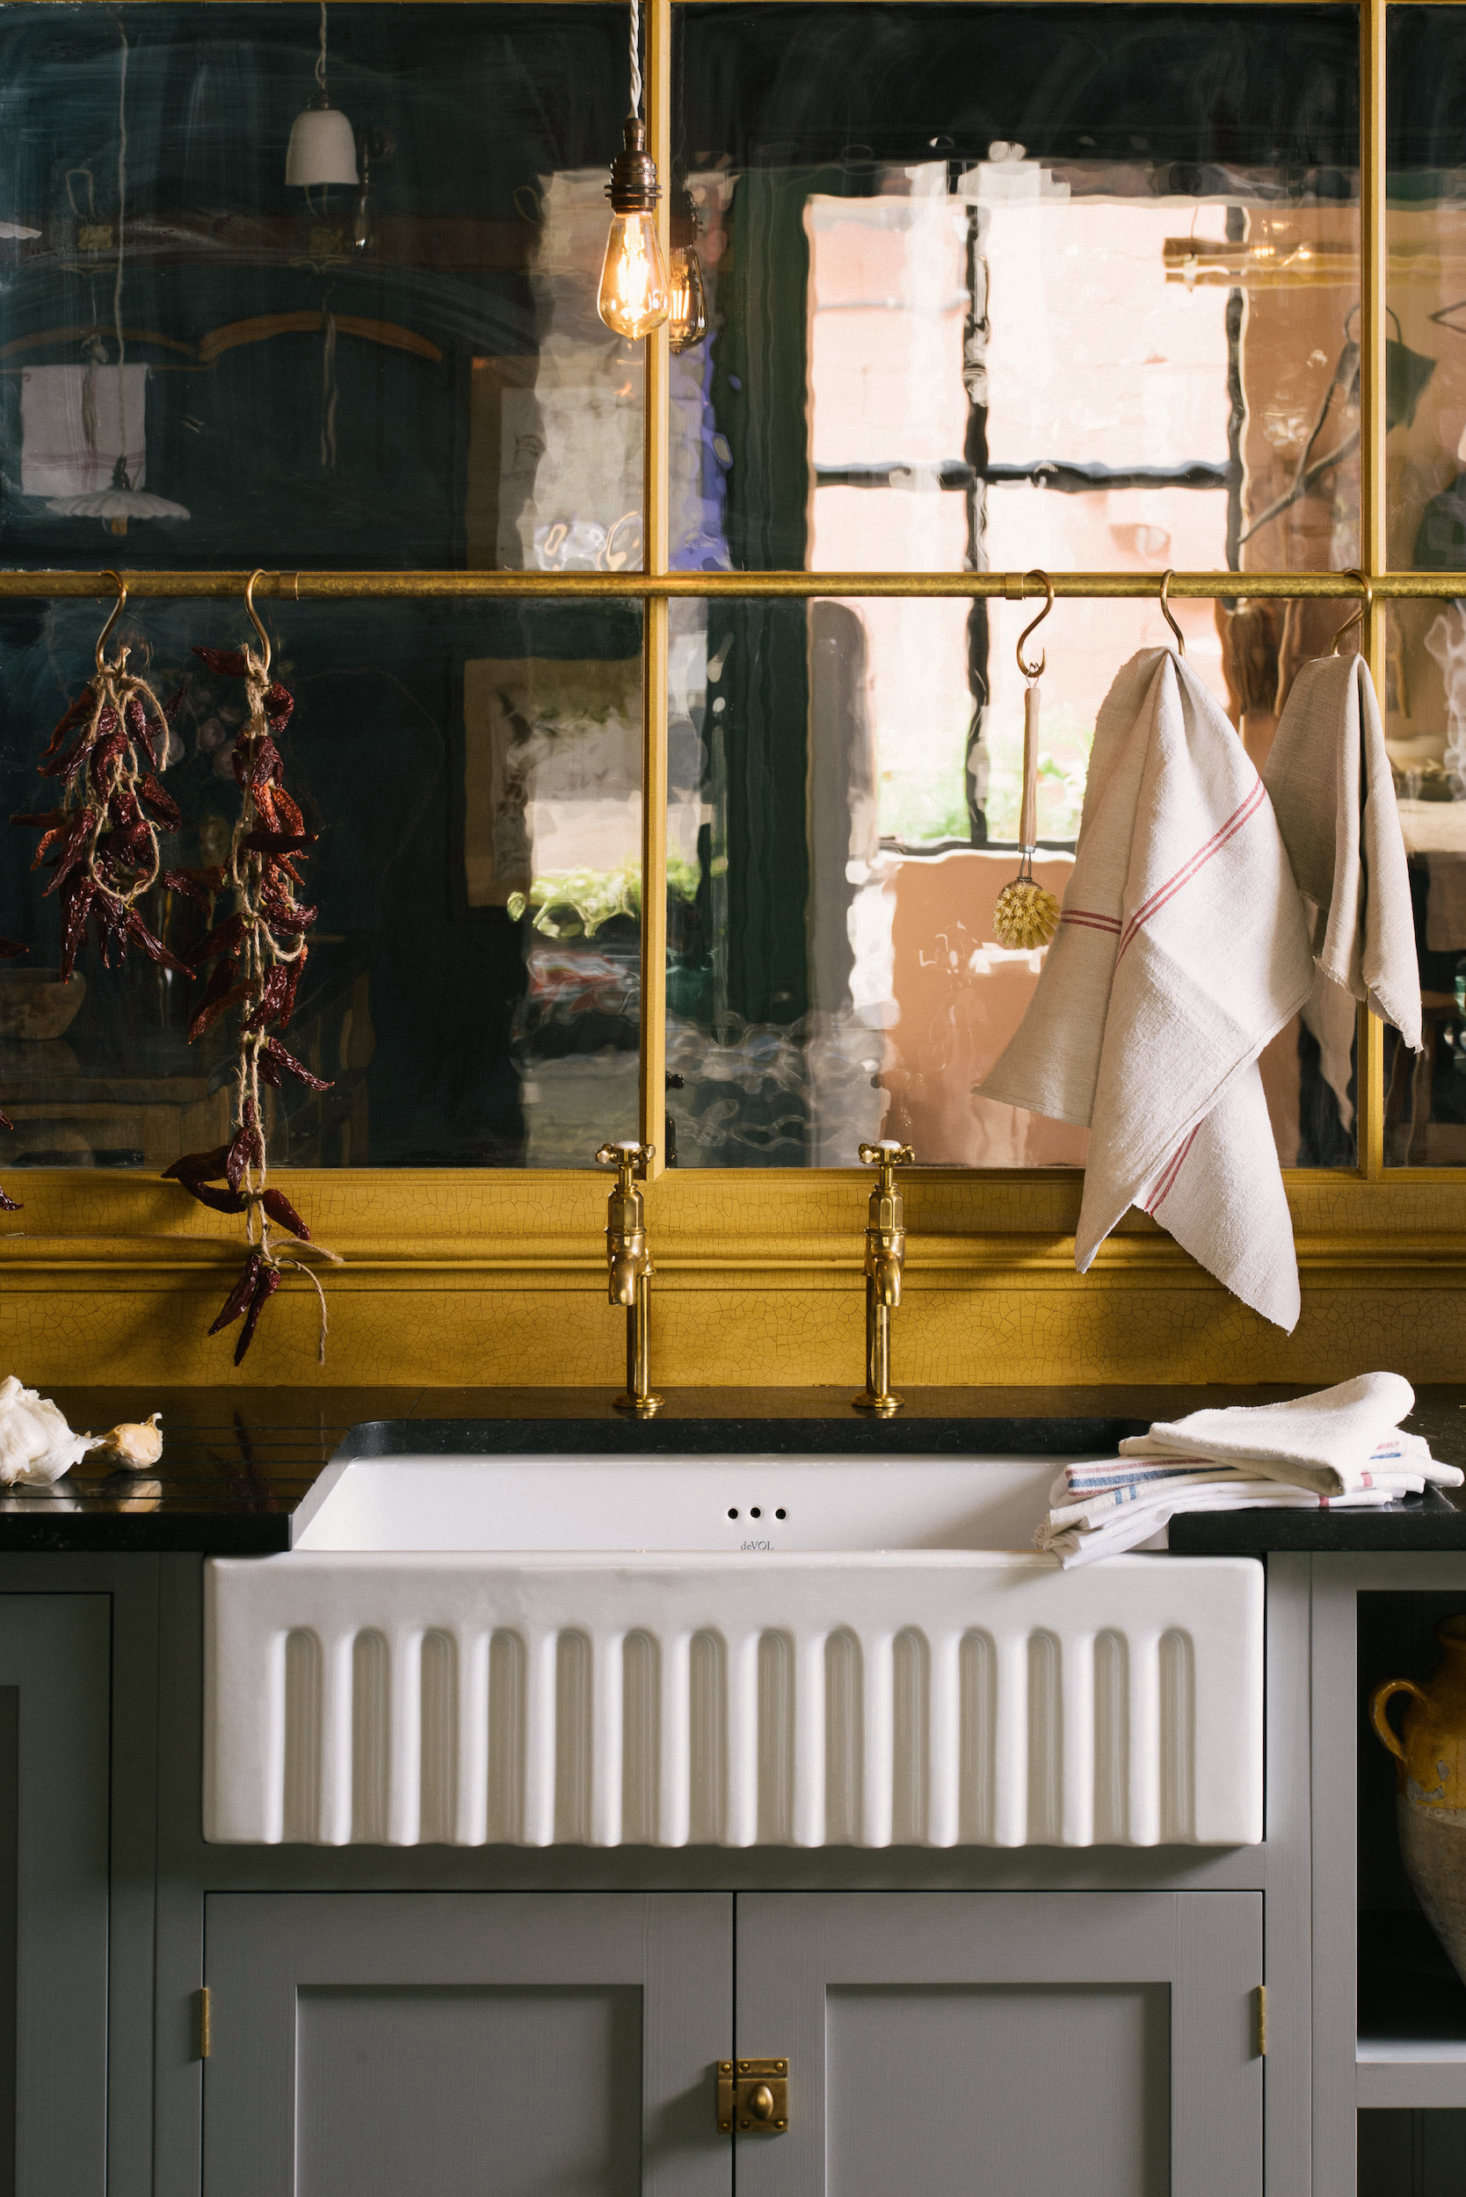 The Single Fluted Sink is from deVOL, as is all the hardware, including the Aged Brass Mayan Taps by Perrin & Rowe and the Hanging Rail. A partition featuring heritage glass separates the Real Shaker Kitchen from another kitchen just beyond it.